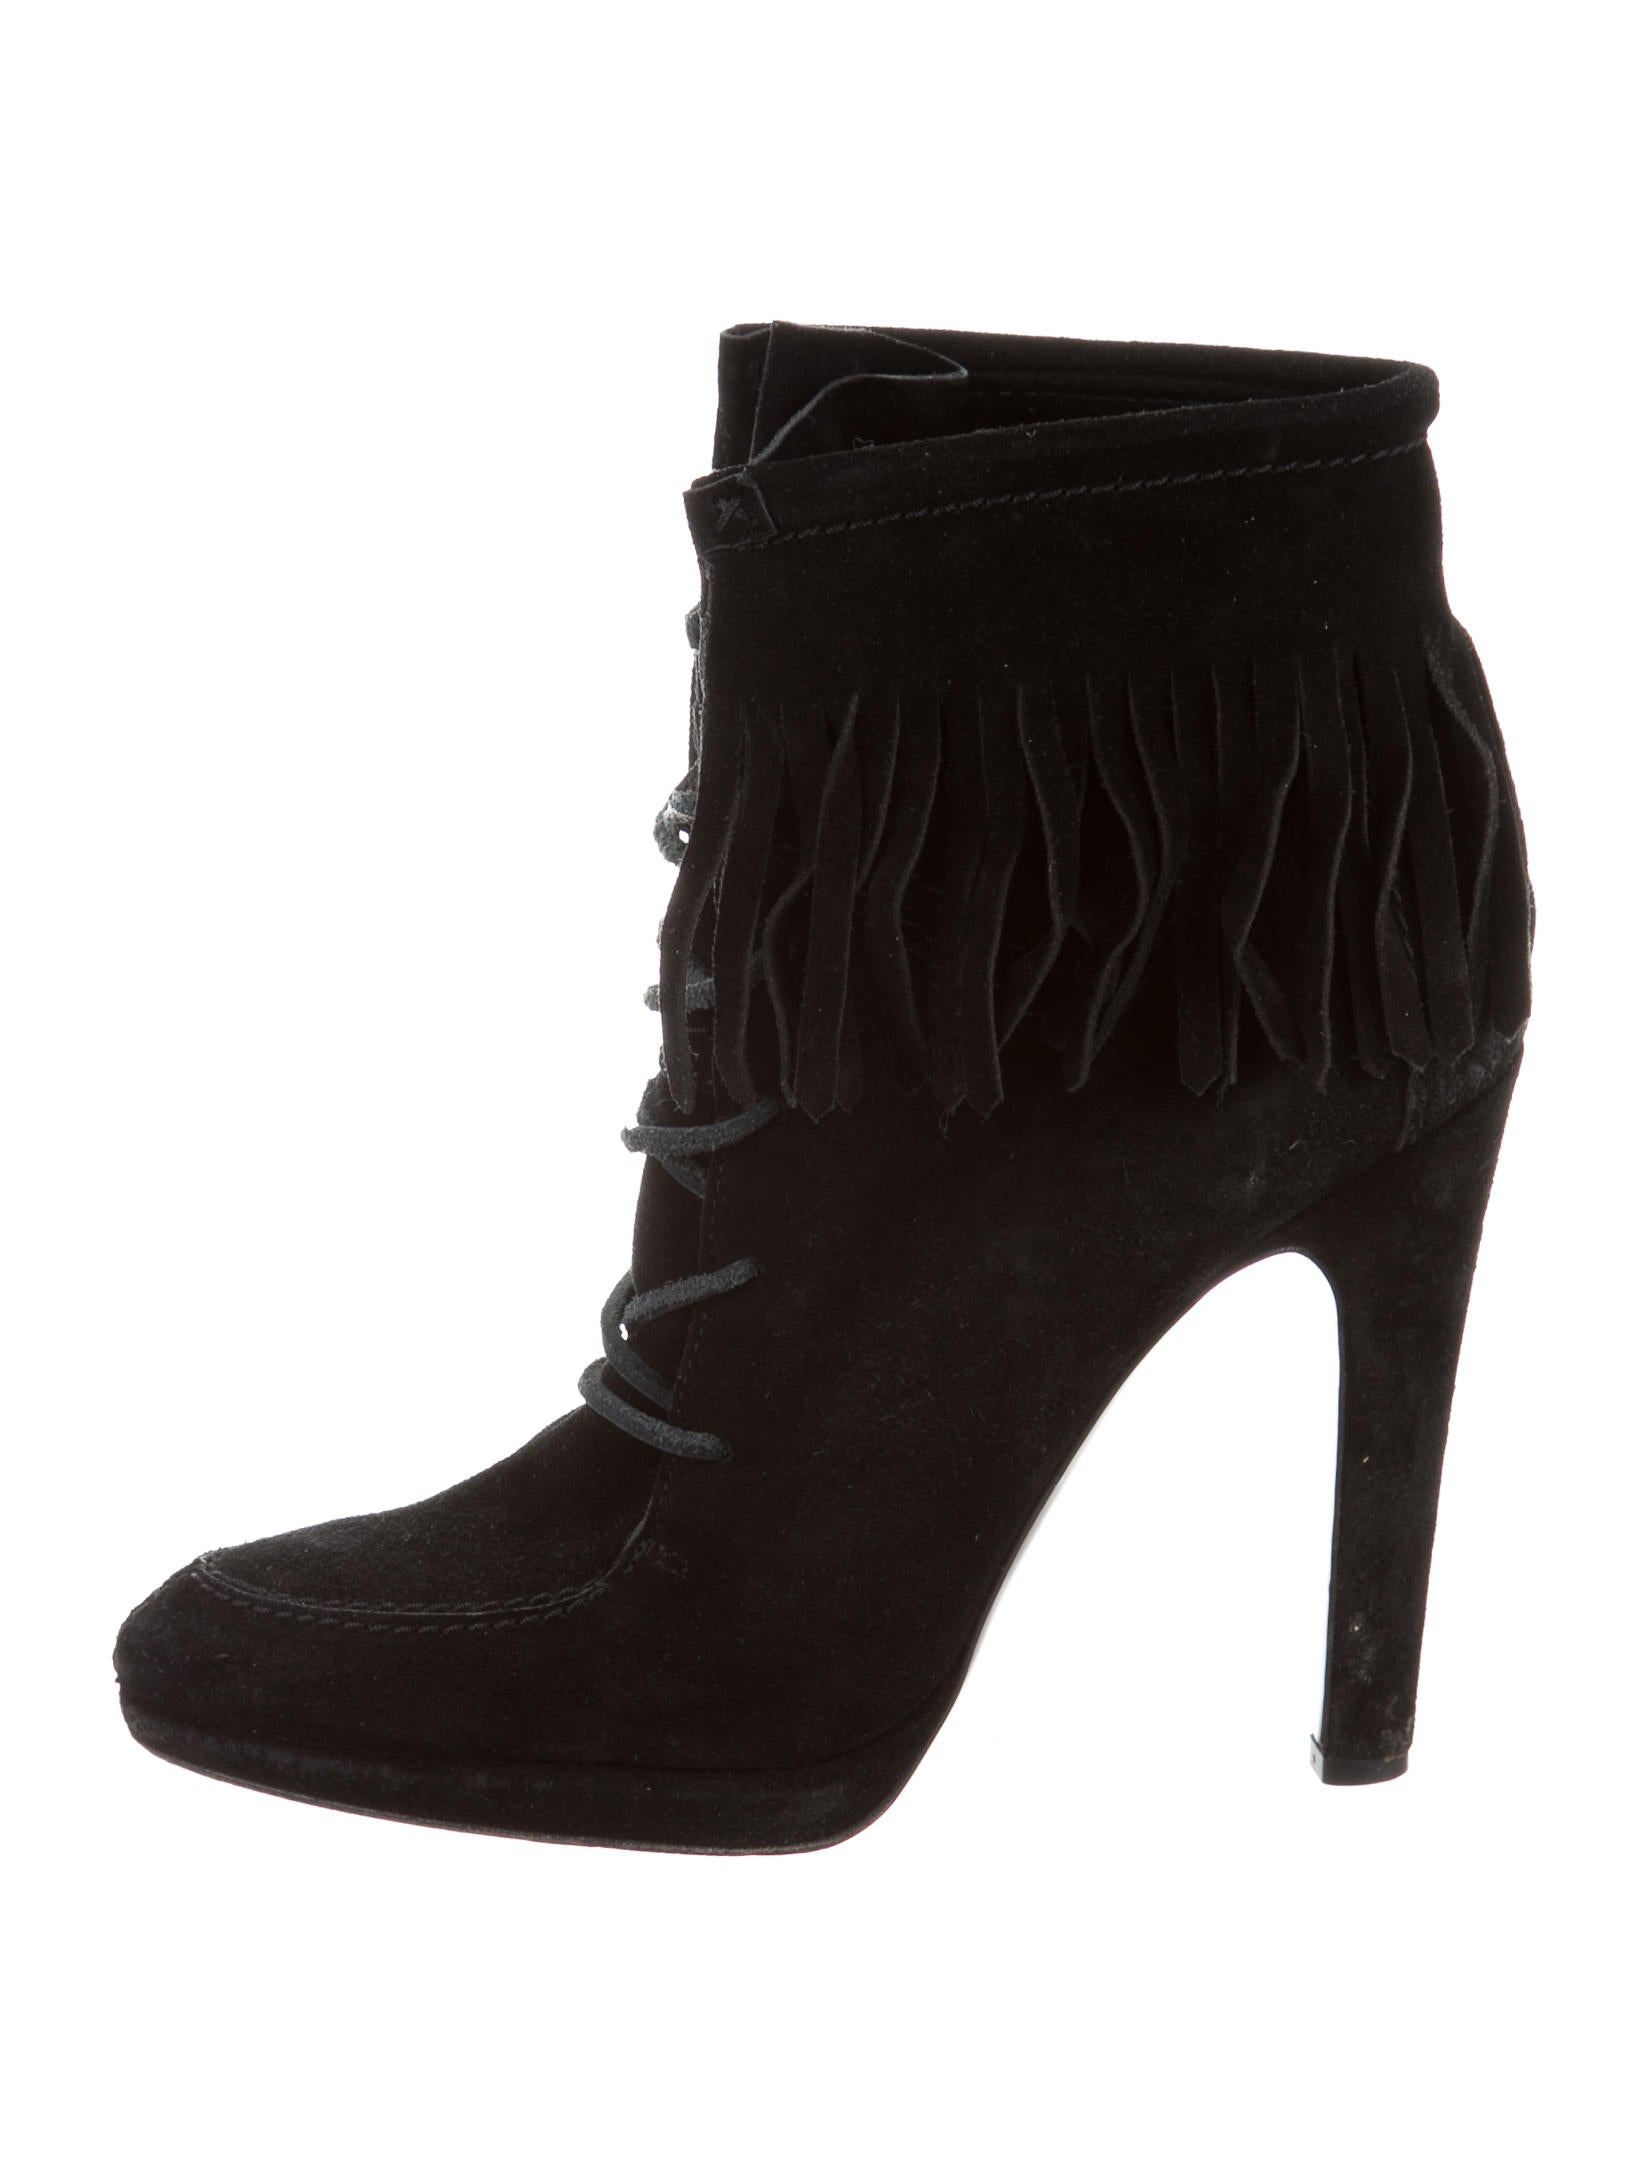 Giuseppe Zanotti x Balmain Suede Ankle Boots discount visa payment clearance manchester great sale cheap discounts cheap low price 2014 unisex a2bezBzRKS